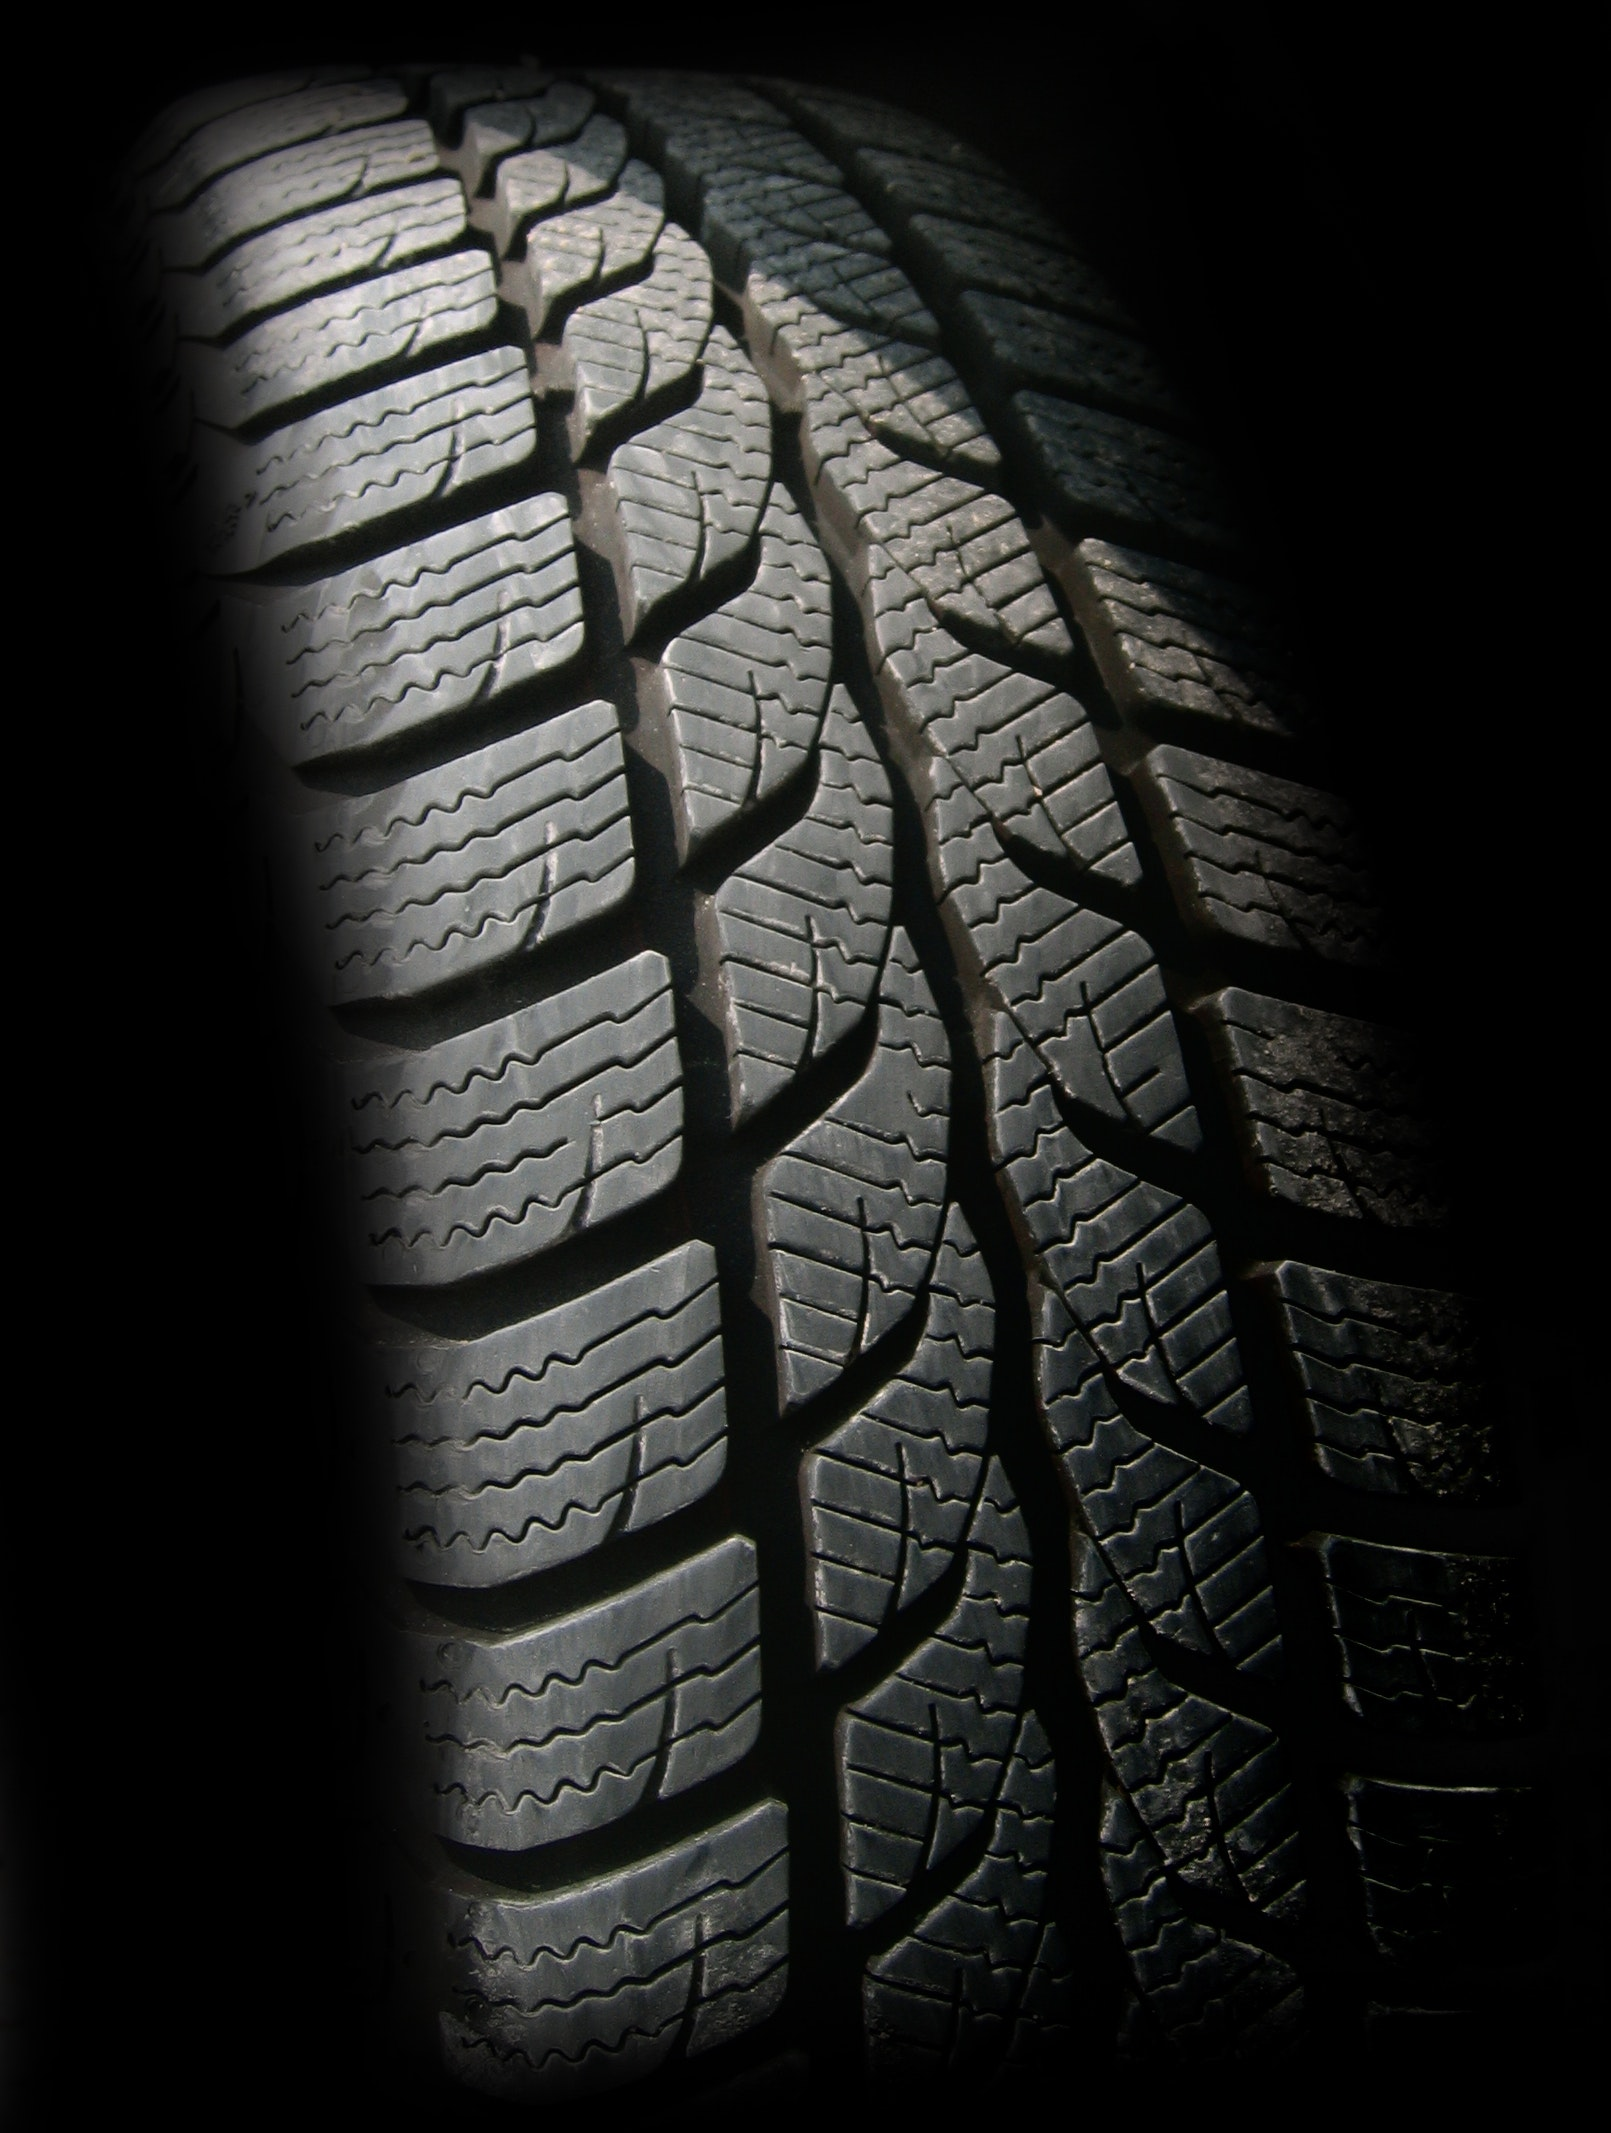 Ever bought part-worn tyres for your car just to save money?